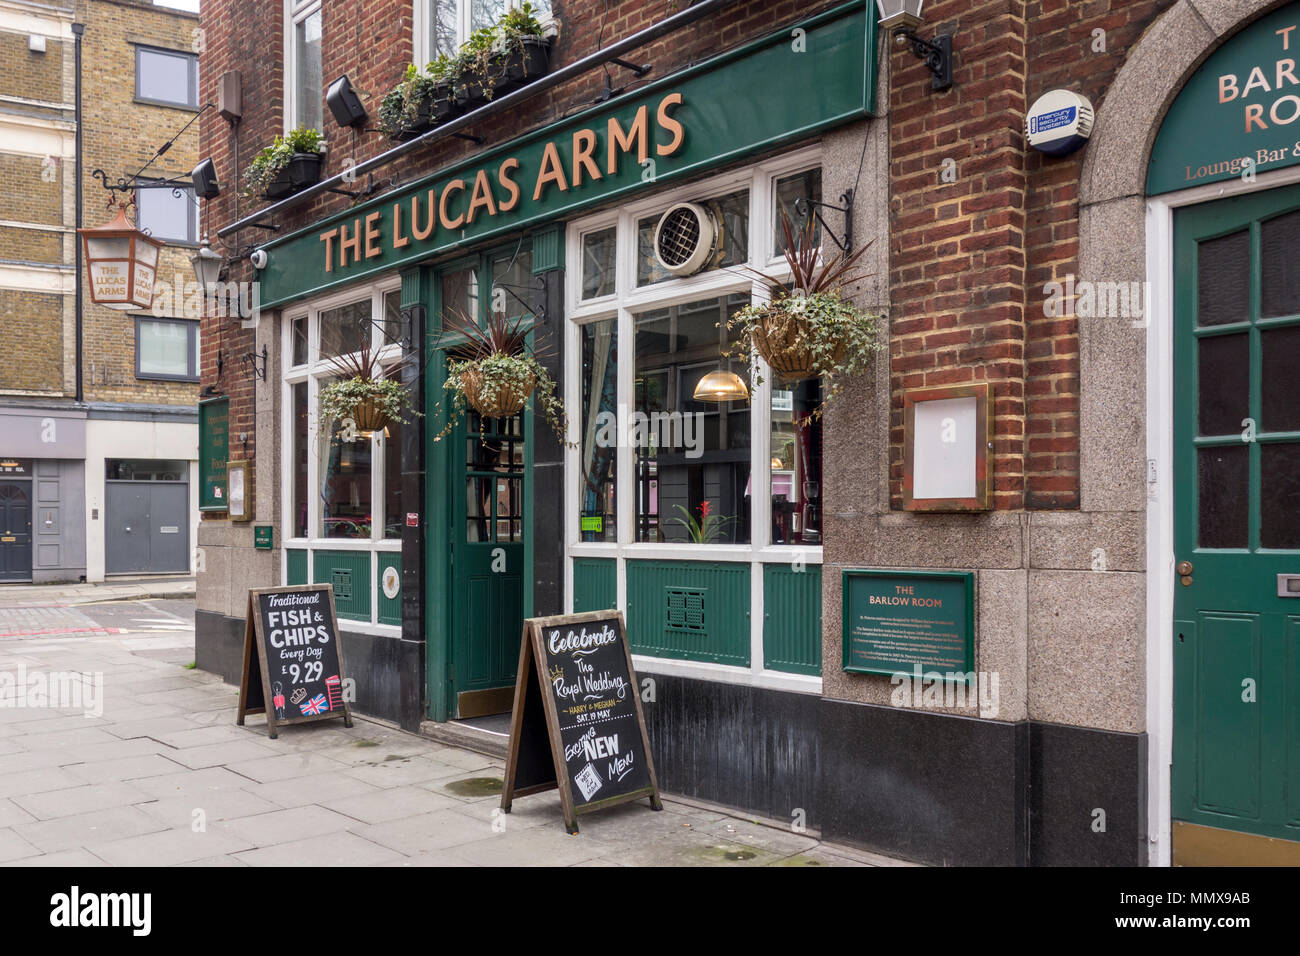 The Lucas Arms Pub Public House Gray S Inn Road London Uk Stock Photo Alamy